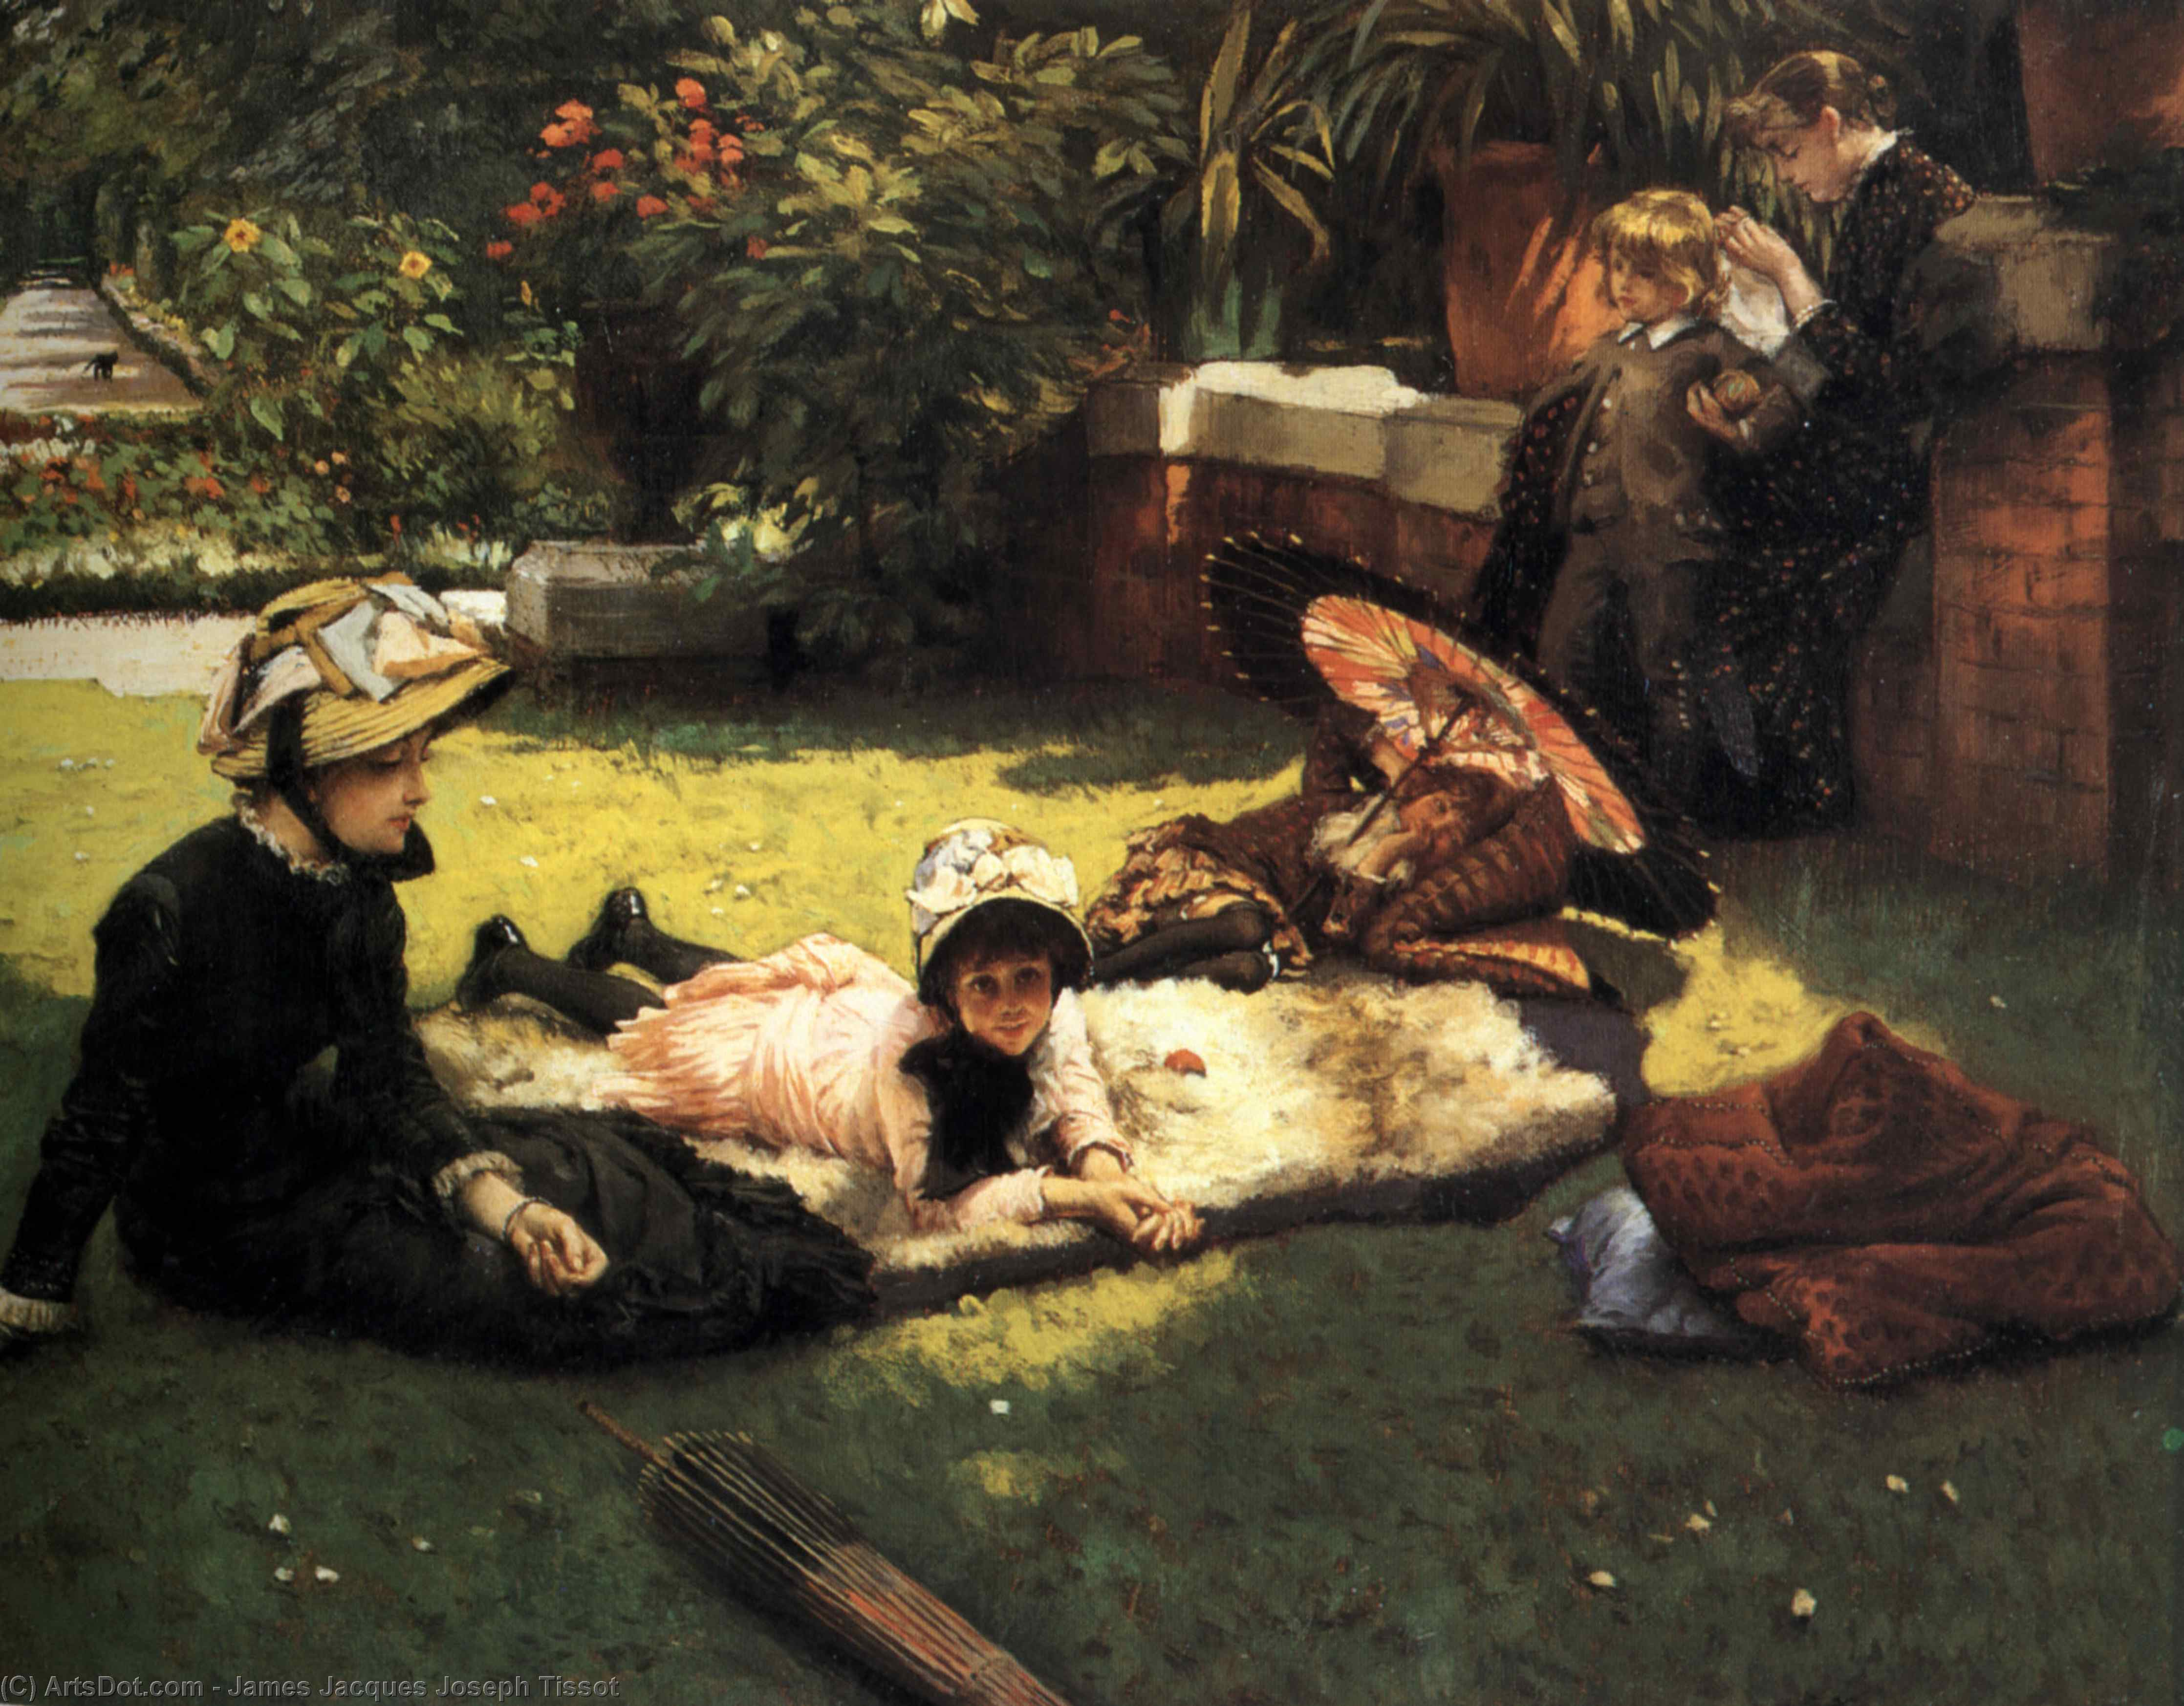 Wikioo.org - The Encyclopedia of Fine Arts - Painting, Artwork by James Jacques Joseph Tissot - In the Sunshine